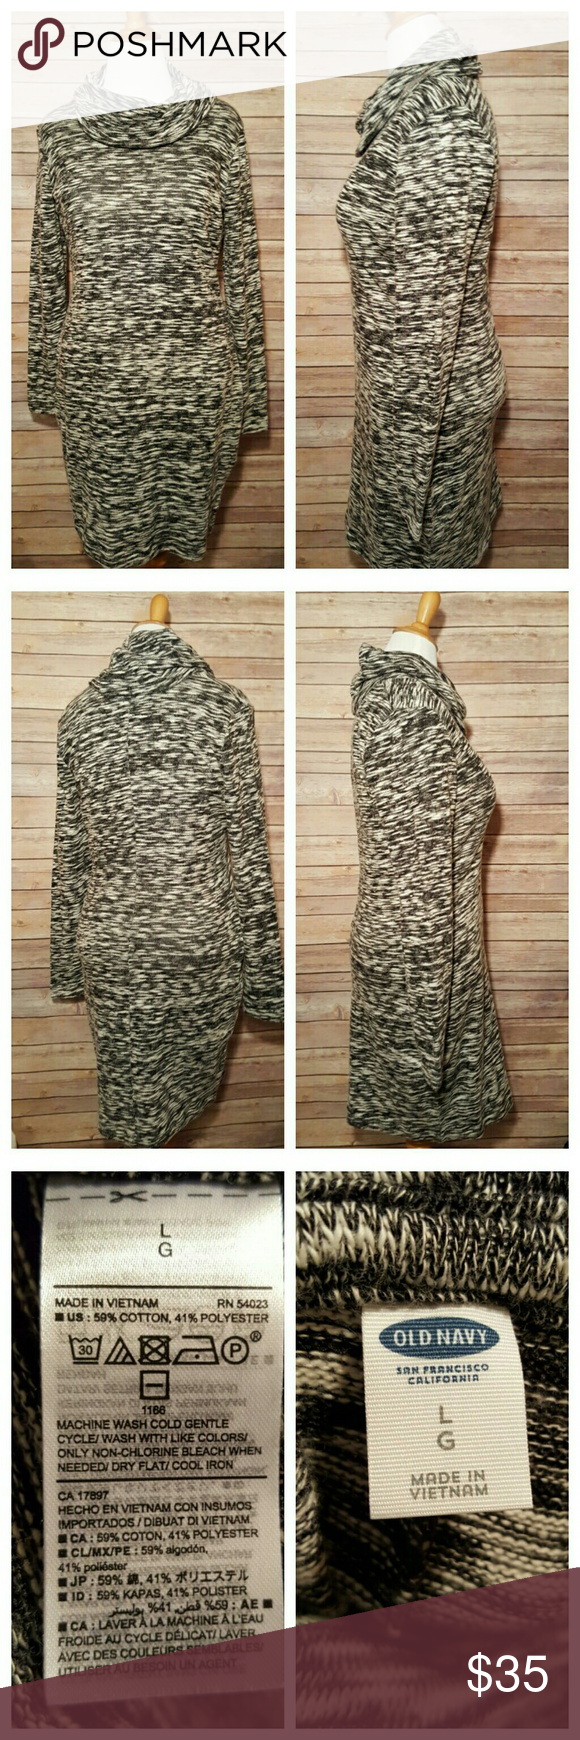 Old Navy Cowl Neck Sweater Dress Black and White L There's still plenty of cool weather left for this soft and comfy sweater dress. Pair with some black leggings and boots and you're all set!  Size Large  59% Cotton 41% Polyester Old Navy Dresses Long Sleeve